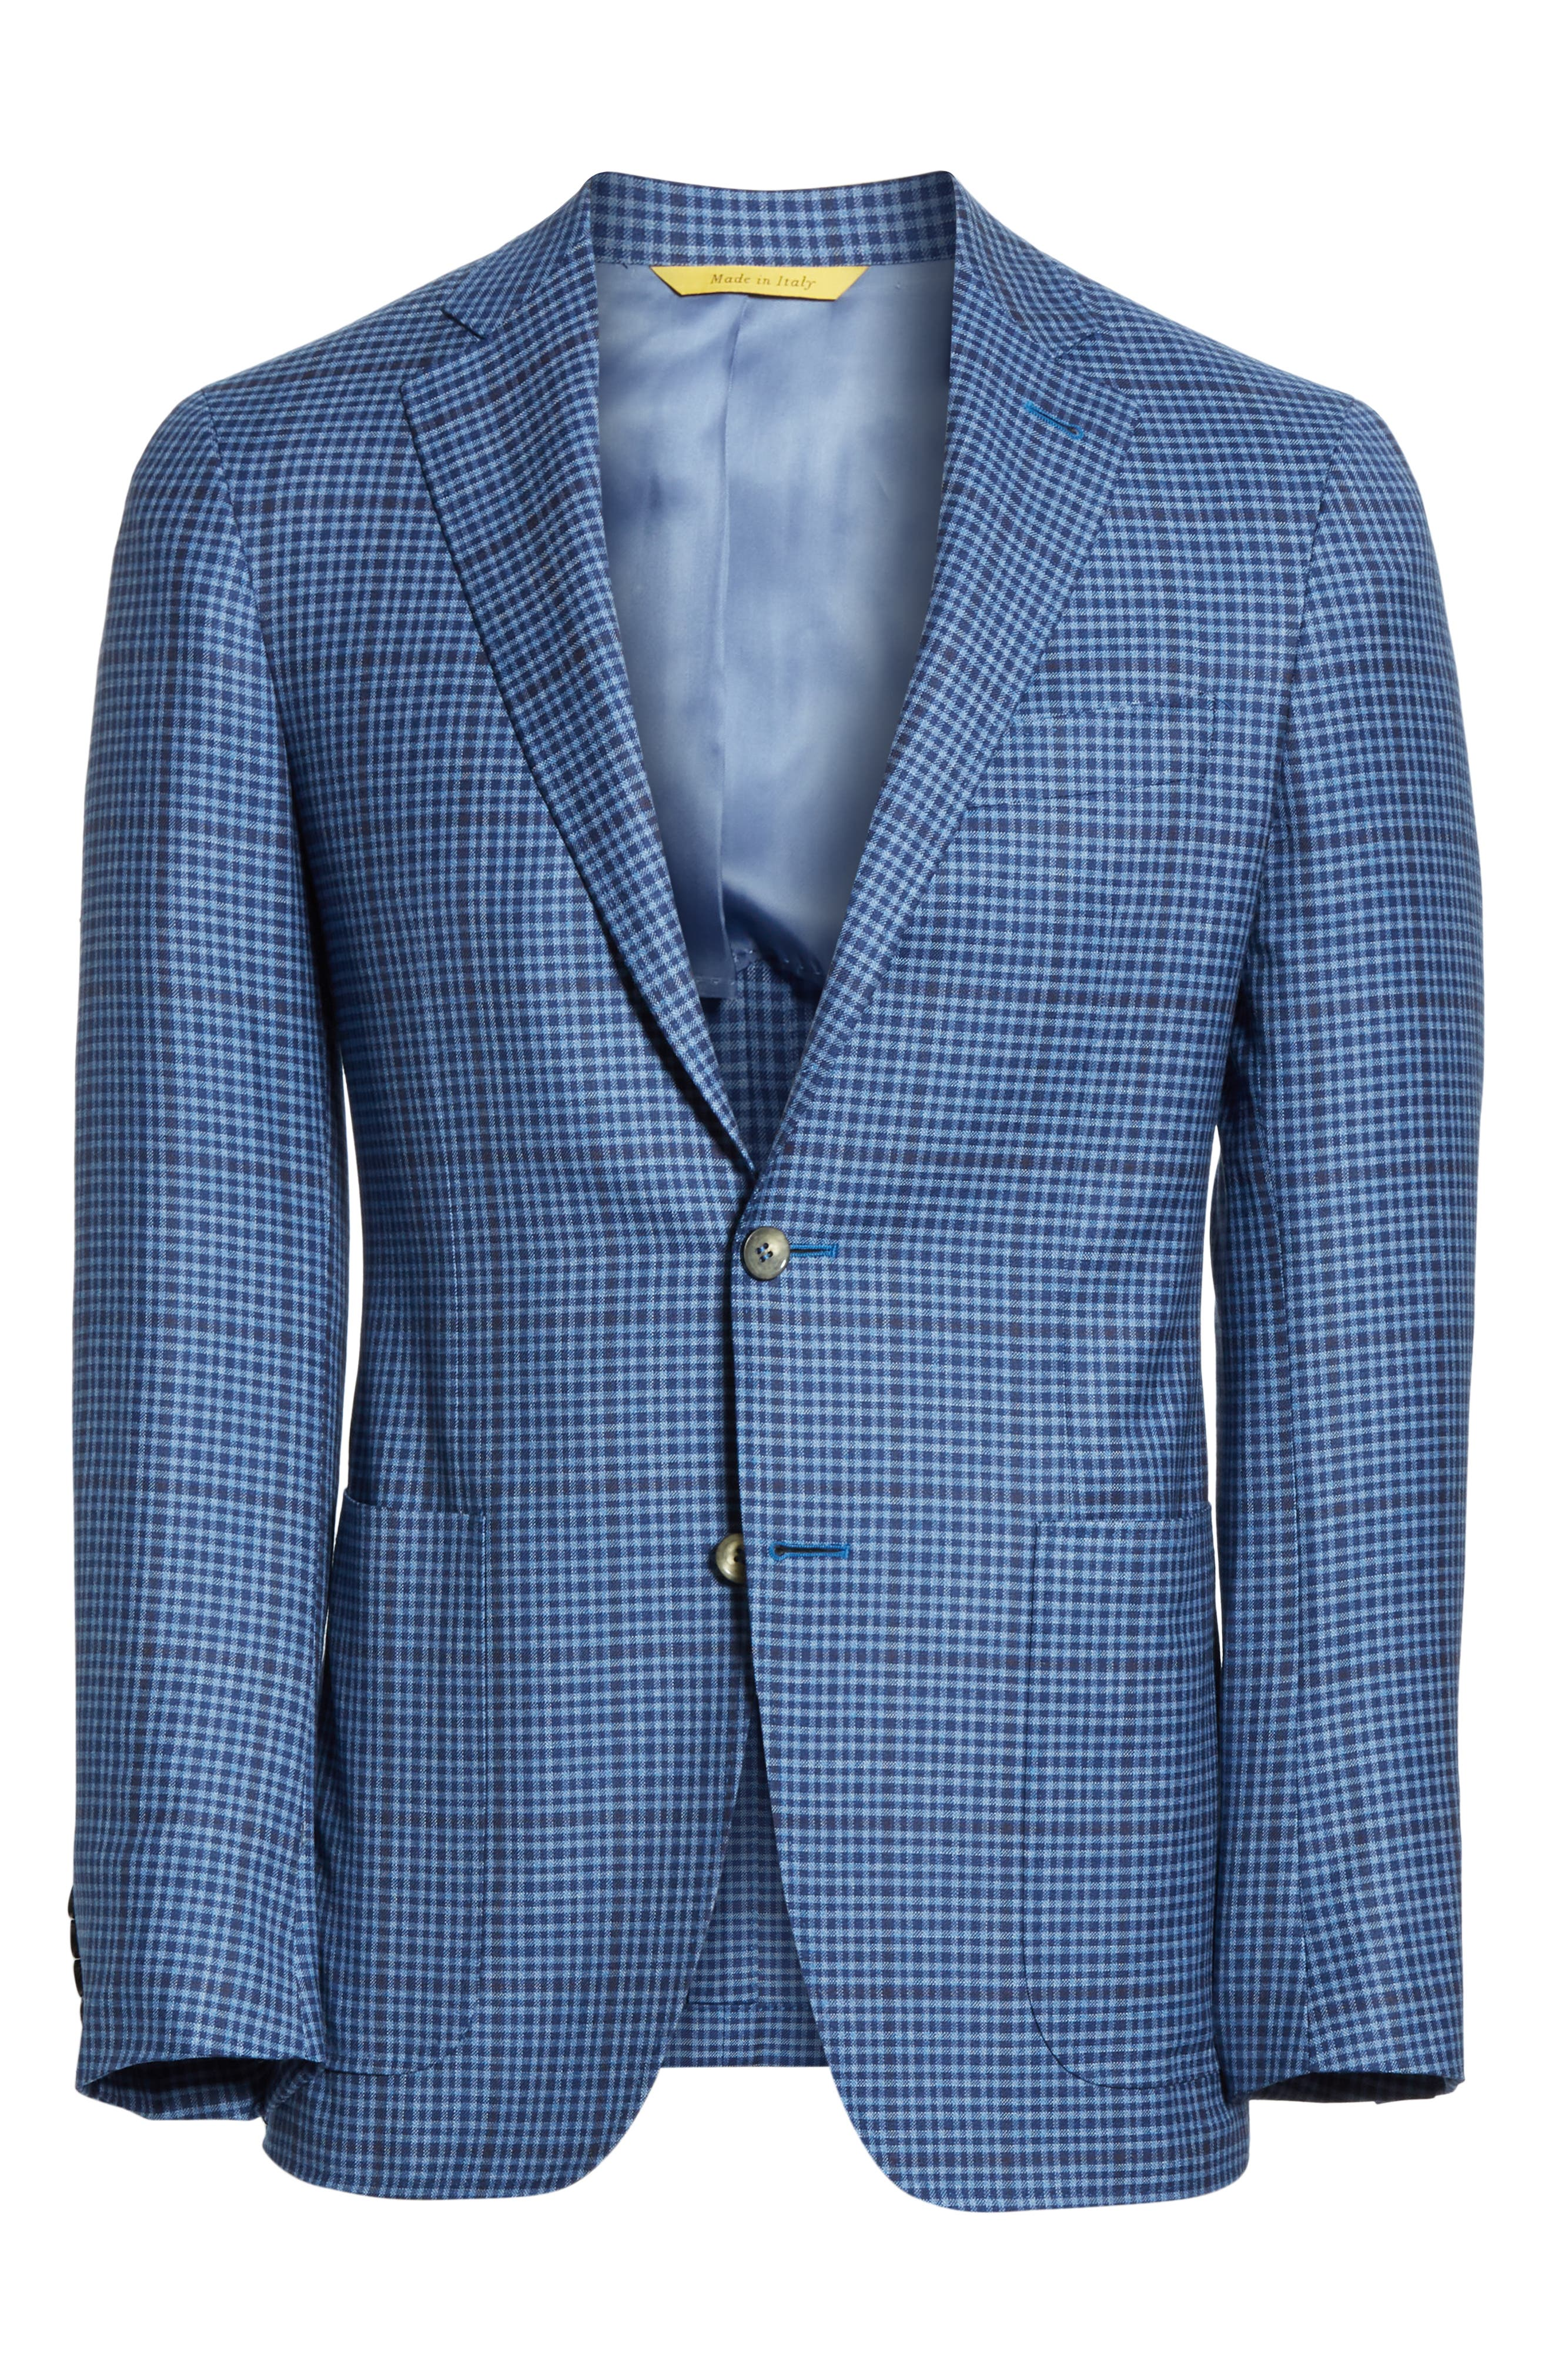 CANALI, Kei Classic Fit Check Wool Sport Coat, Alternate thumbnail 5, color, BLUE